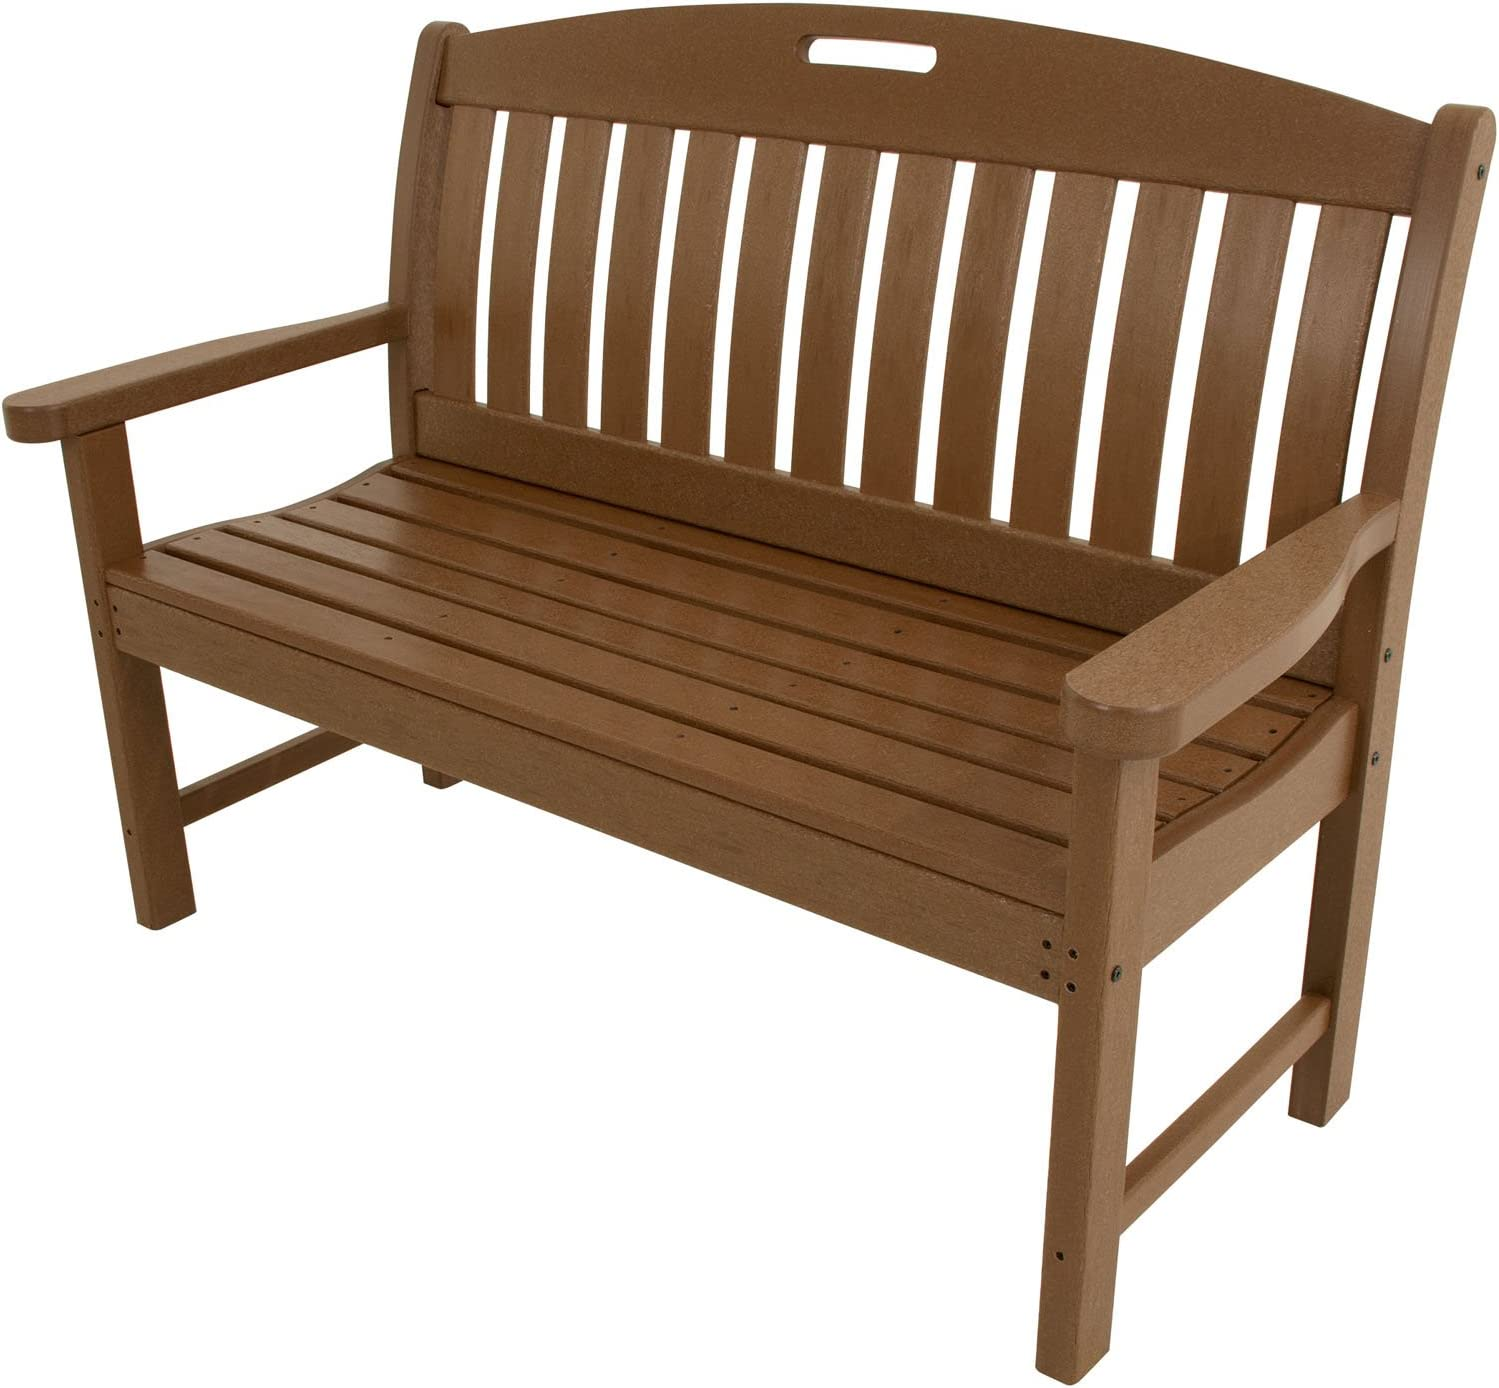 "Hanover Outdoor Furniture HVNB48TE Avalon All Weather Porch Bench, 48"", Teak"